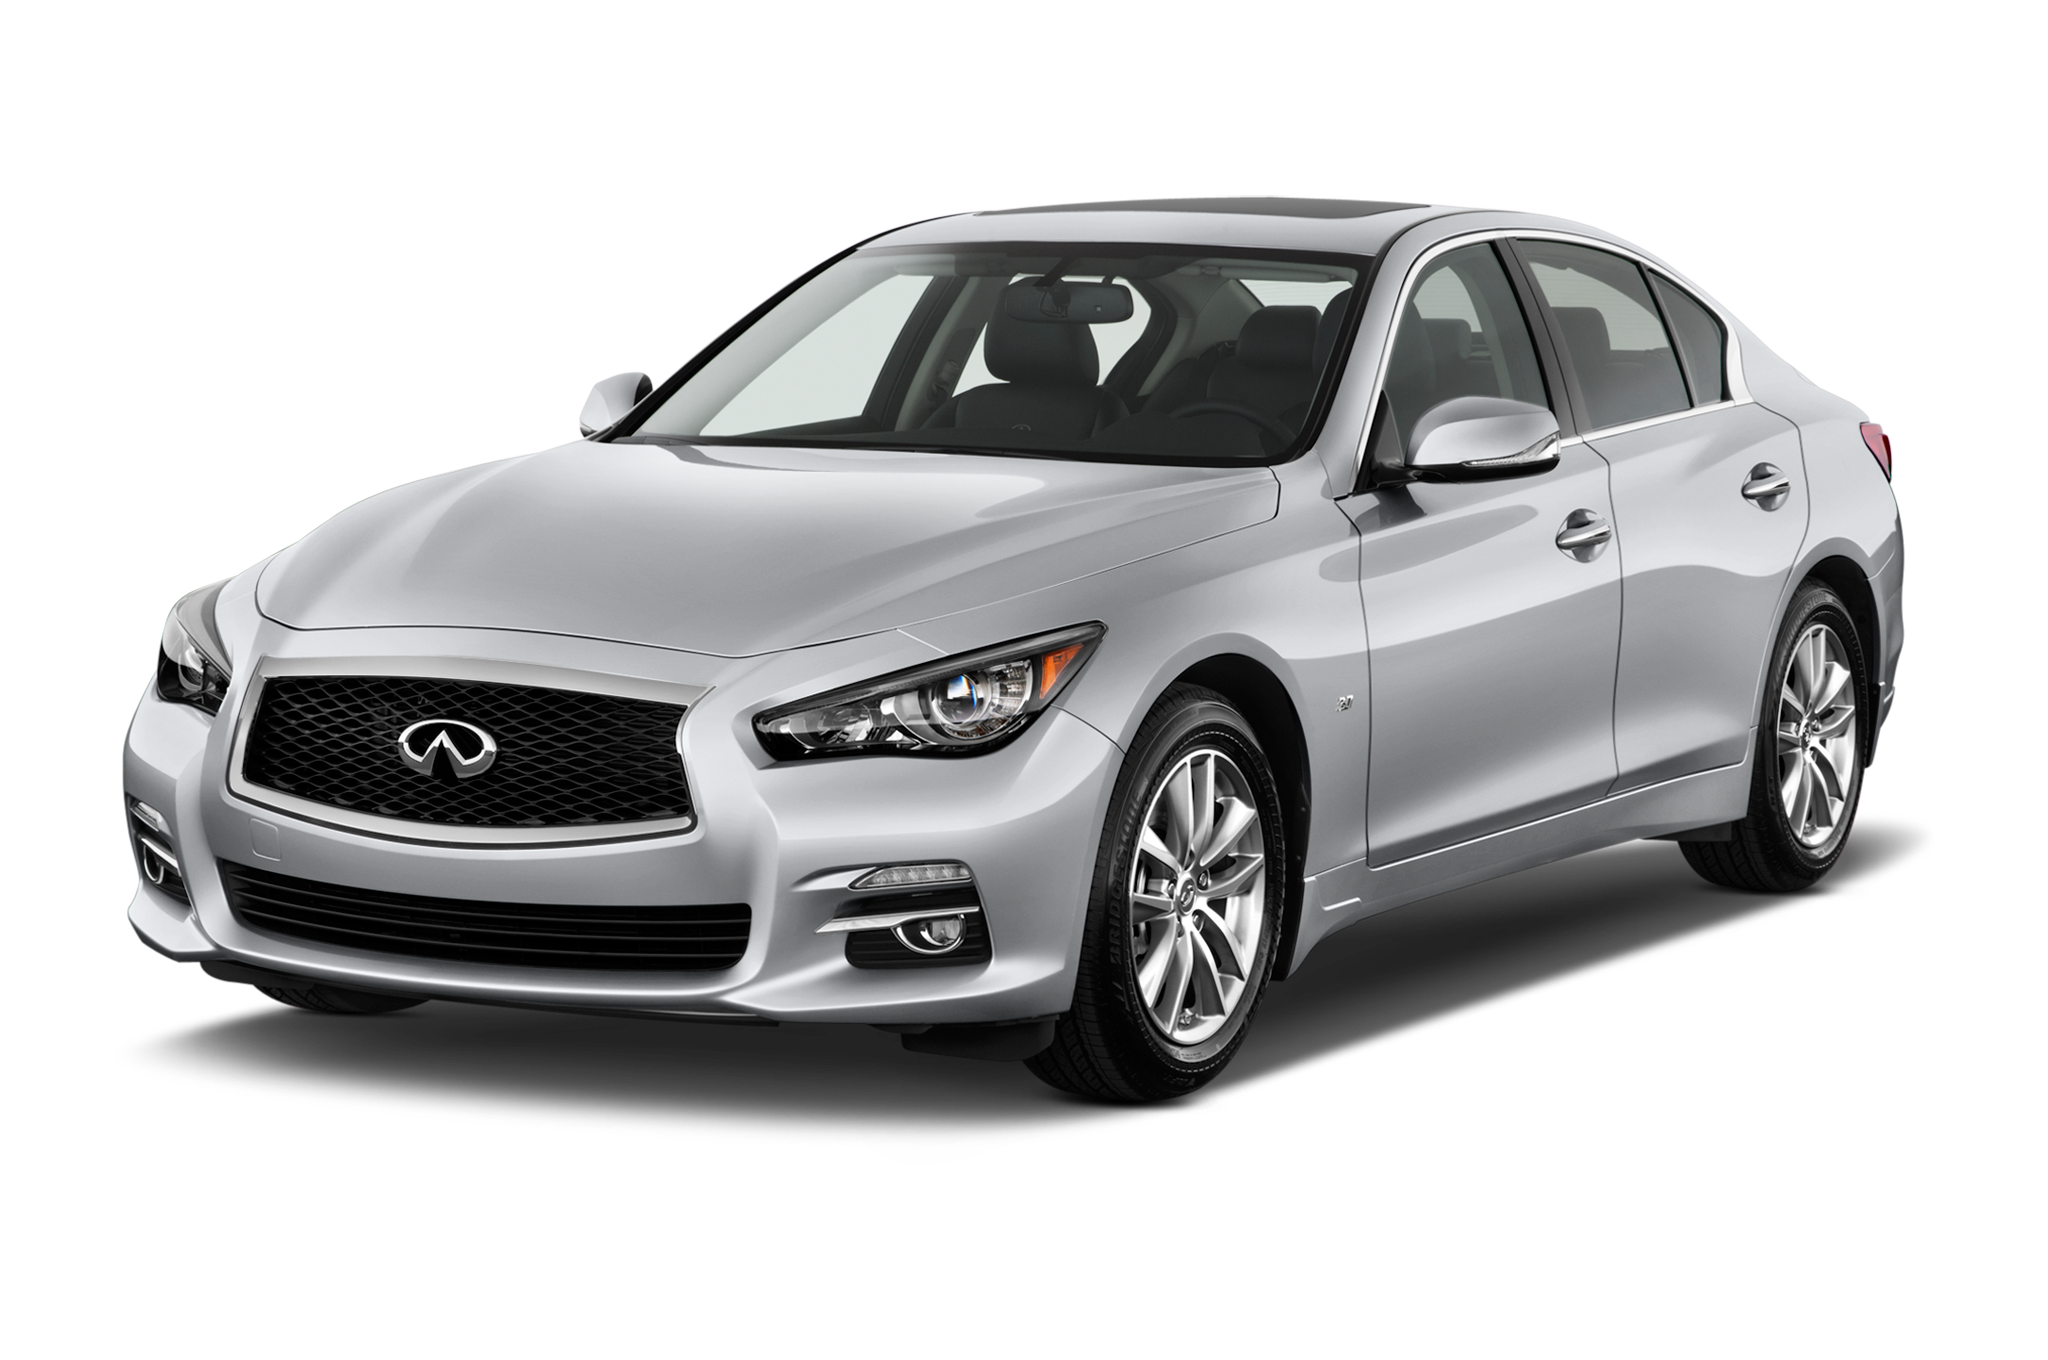 2018 infiniti q50 emporium auto lease. Black Bedroom Furniture Sets. Home Design Ideas